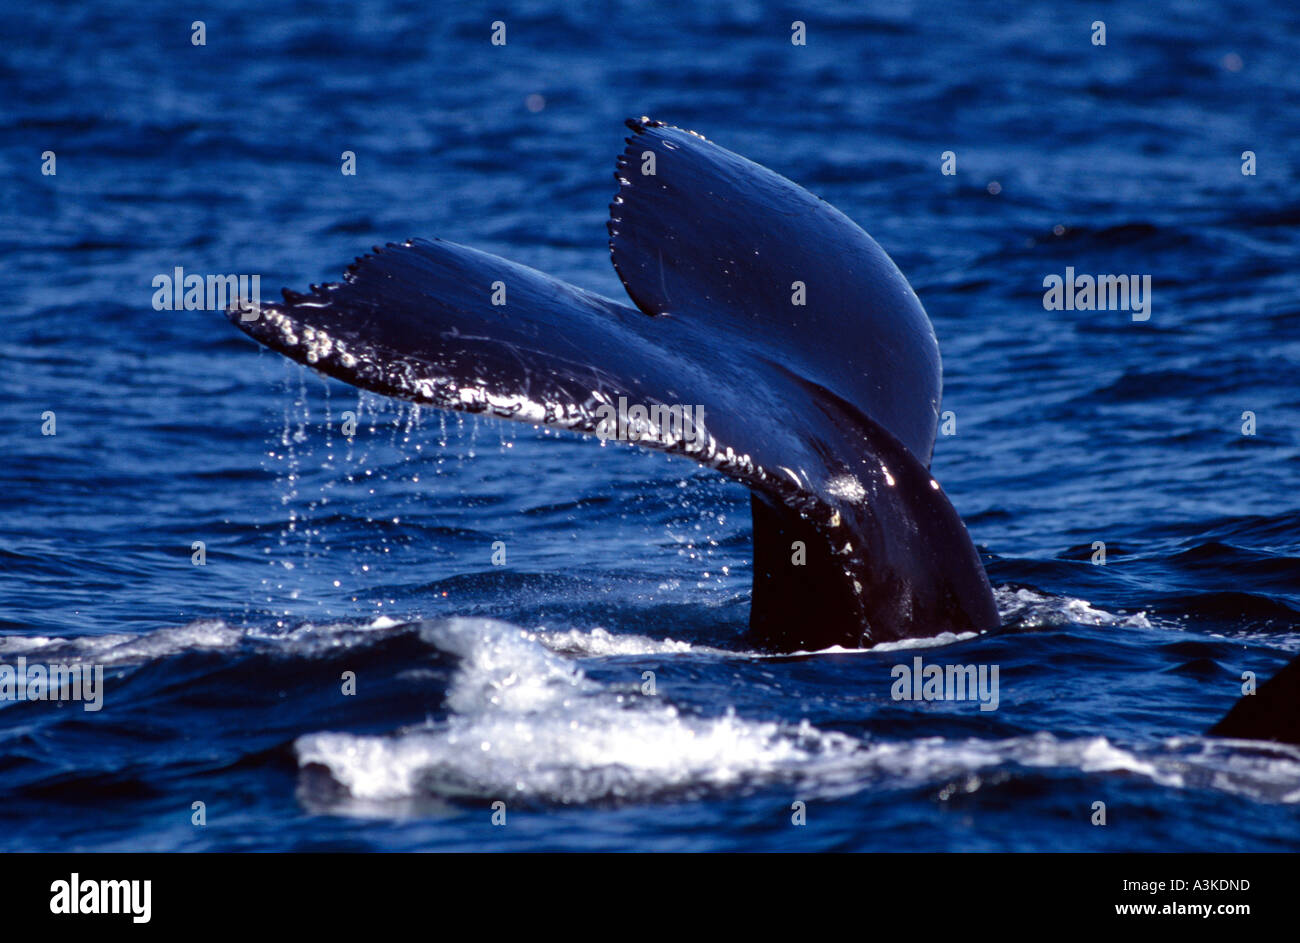 Spermwhale (Physeter catodon) starting to dive, Andenes, Norway - Stock Image